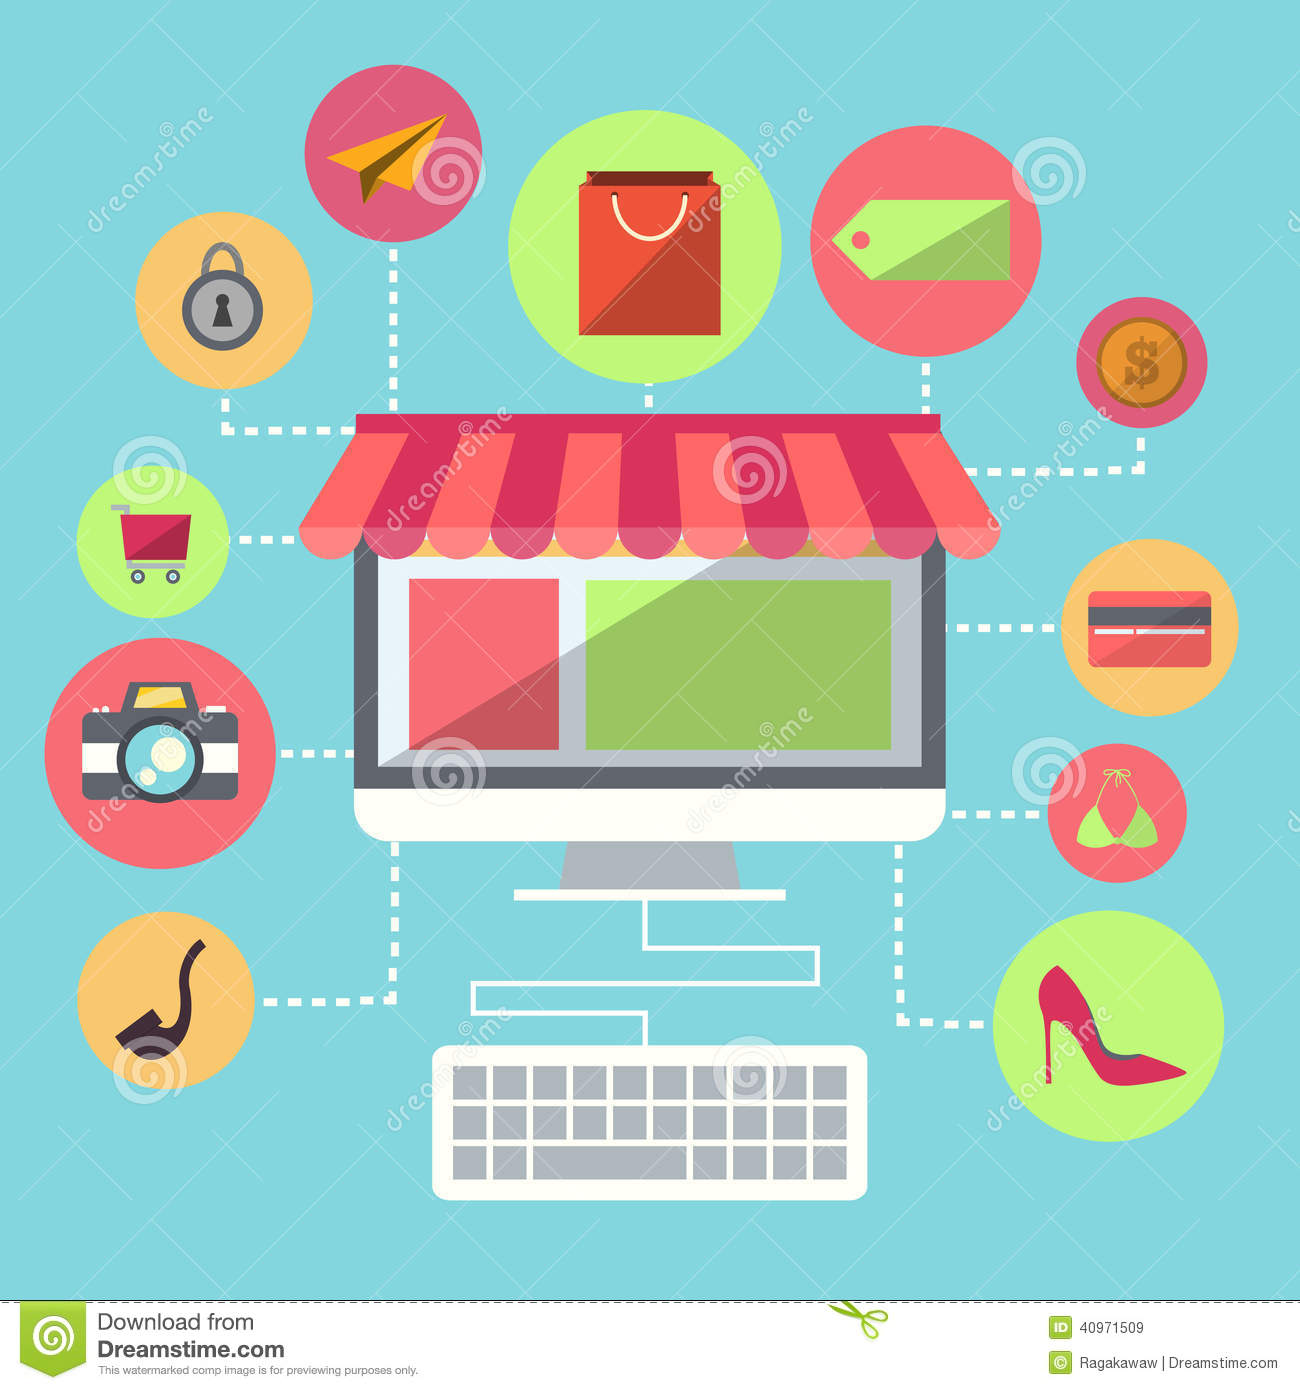 Online store Everything you need to start an online store and sell online Selling online with your own ecommerce website has never been easier, faster, or more scalable.